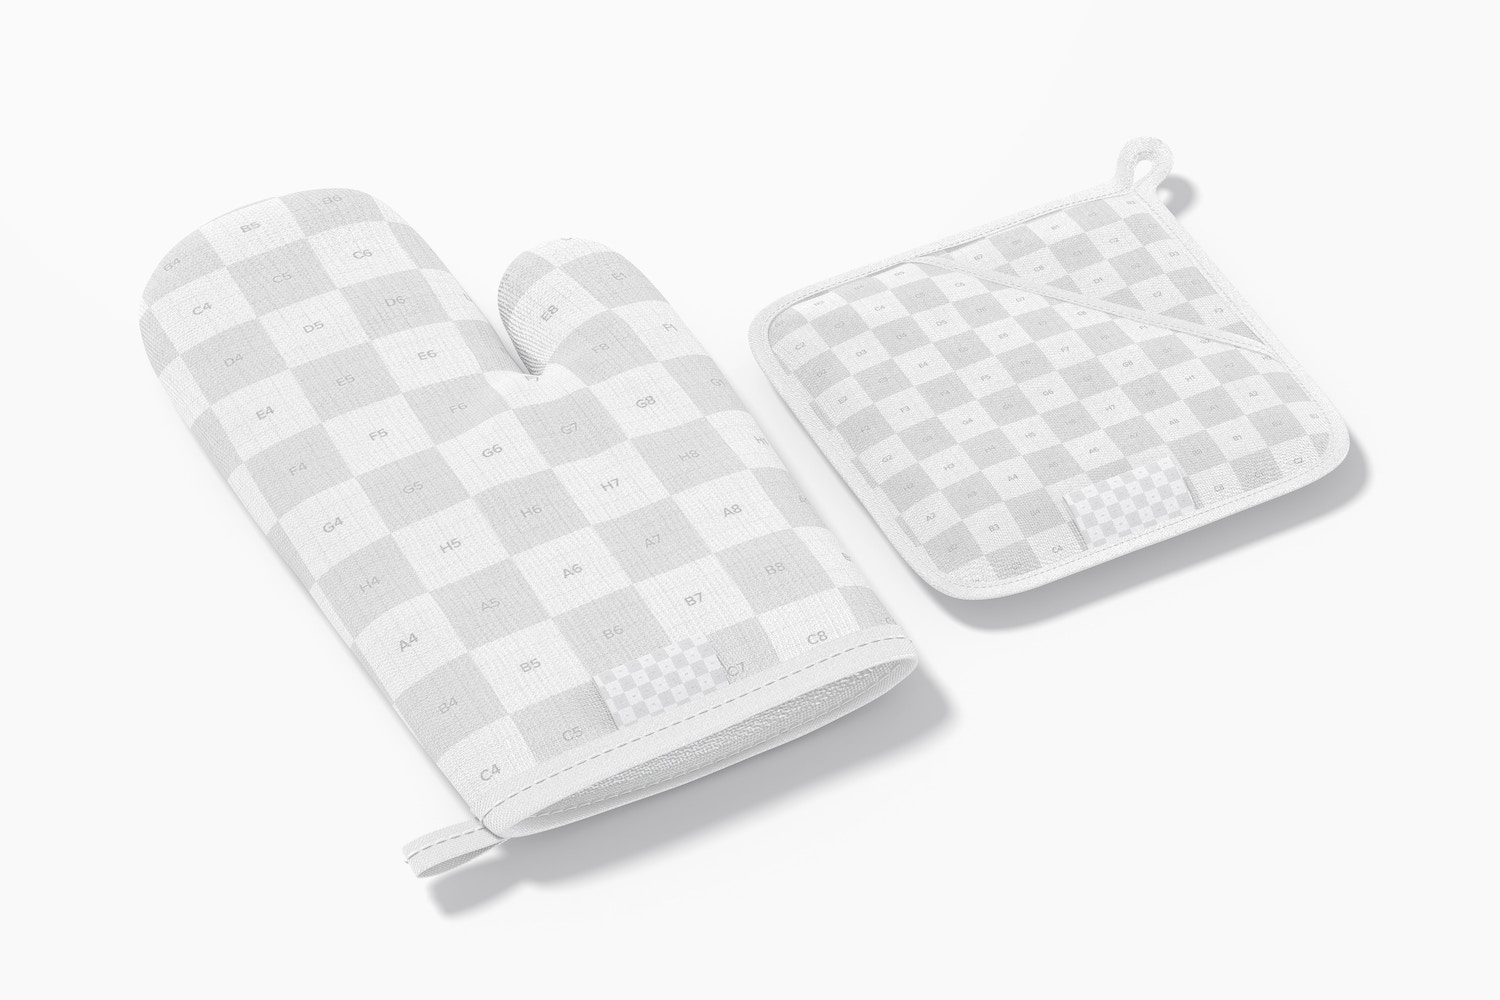 Oven Mitt and Potholder Mockup, Perspective View